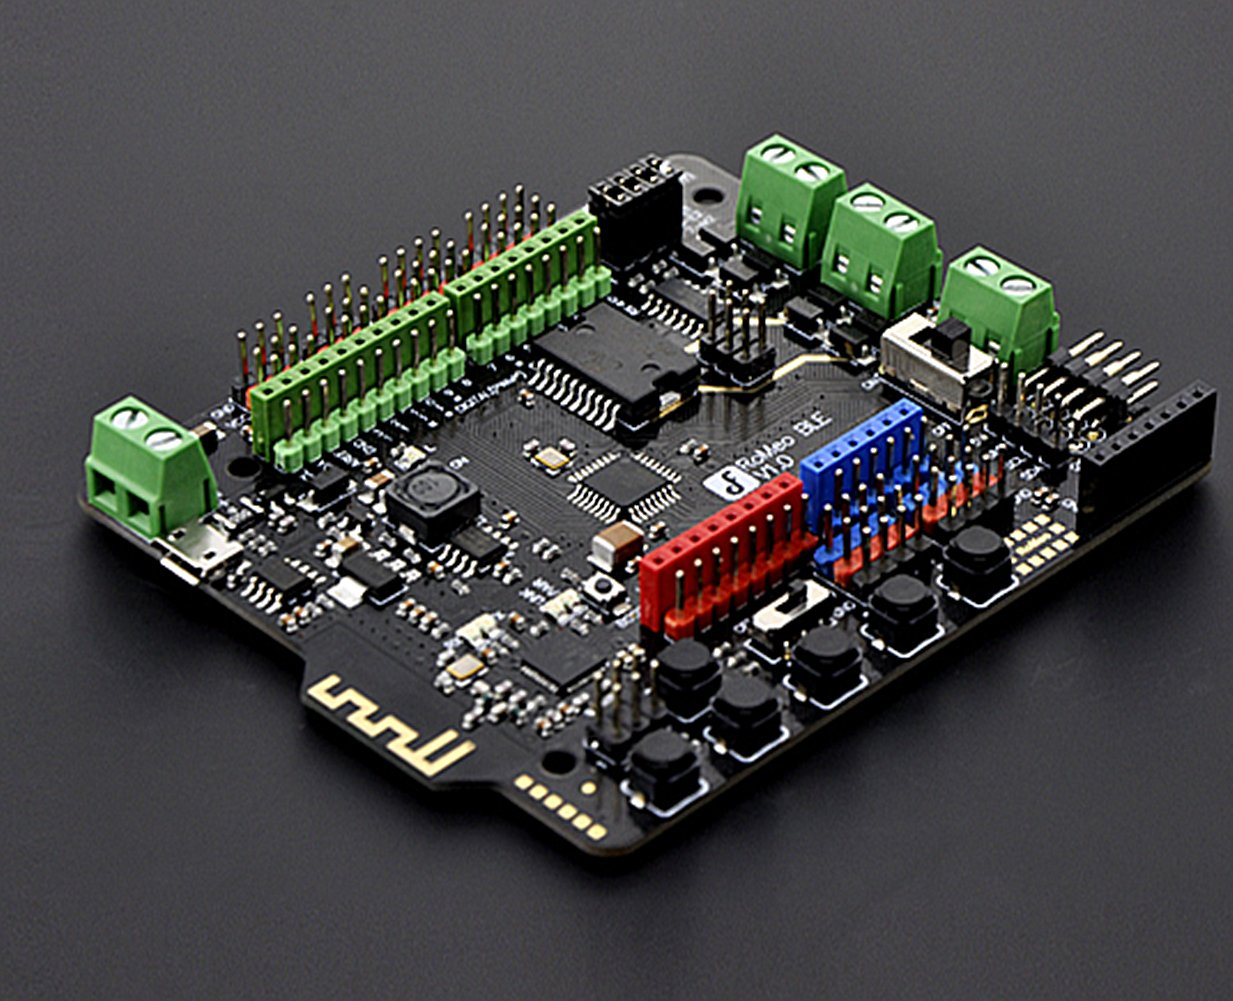 Romeo BLE (Arduino Compatible Atmega 328)/You Can Describe It As A Control Board Specially Designed For Robot Applications, Carrying The Gene Of Bluetooth 4.0 And Being Compatible With Arduino.